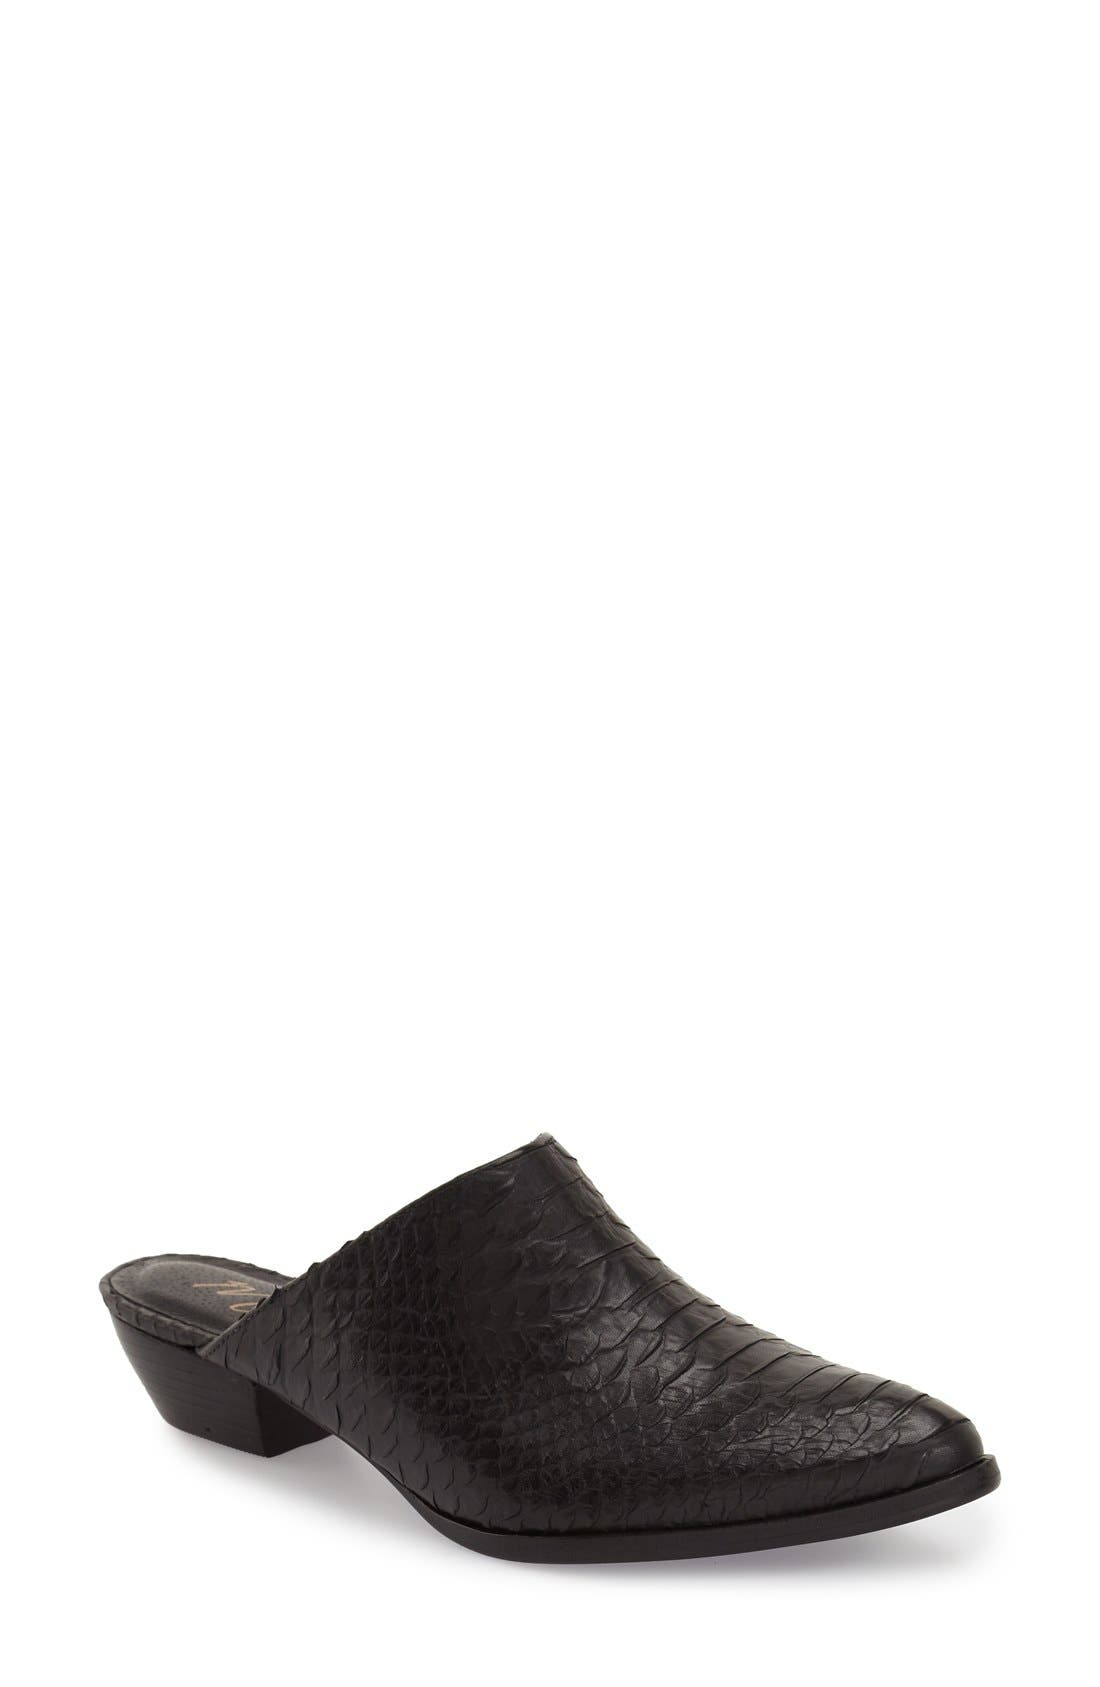 'Clover' Mule,                         Main,                         color, Black Leather